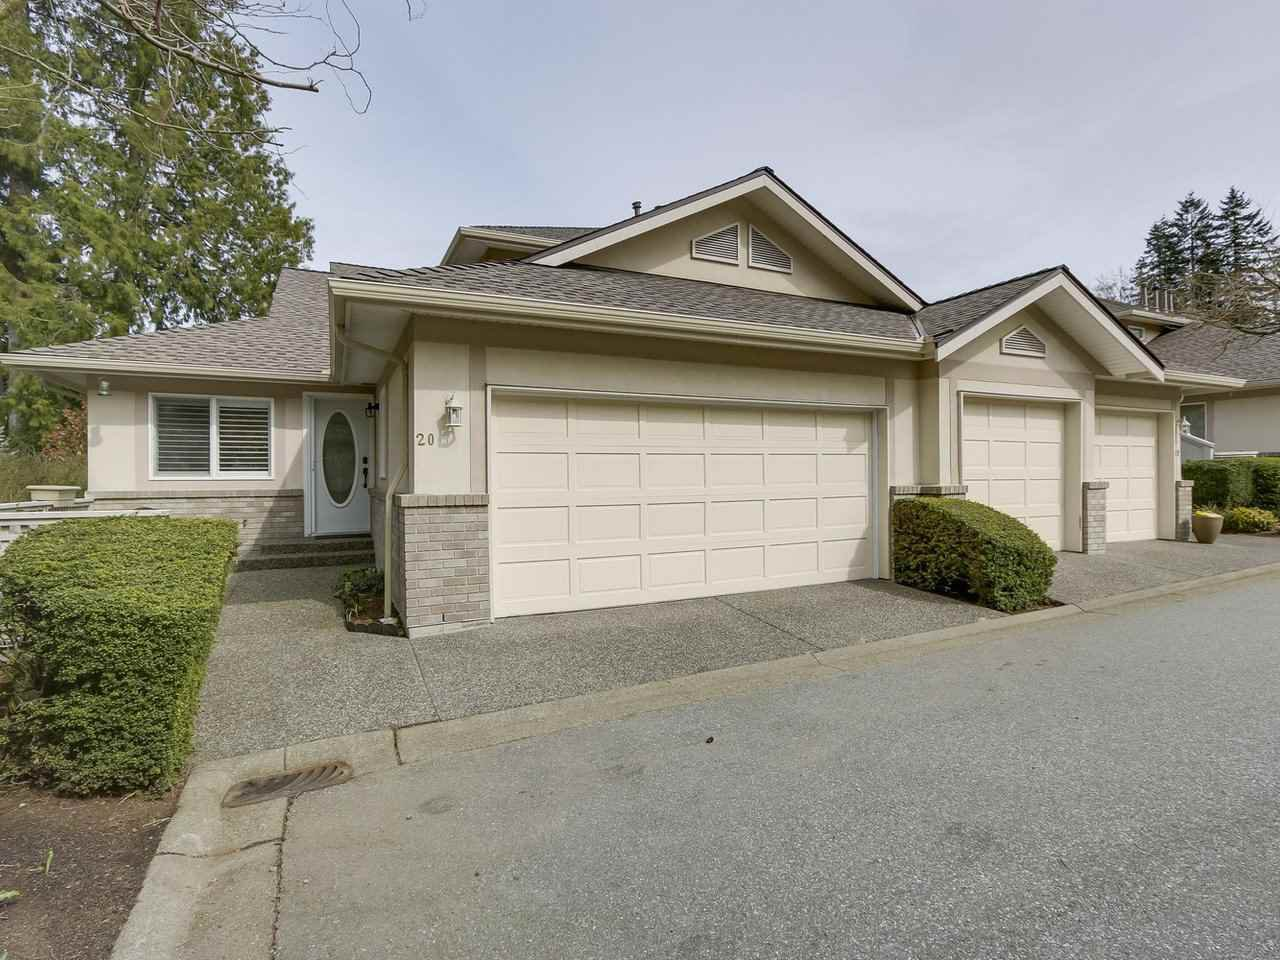 """Main Photo: 20 15099 28 Avenue in Surrey: Elgin Chantrell Townhouse for sale in """"SEMIAHMOO GARDENS"""" (South Surrey White Rock)  : MLS®# R2252729"""